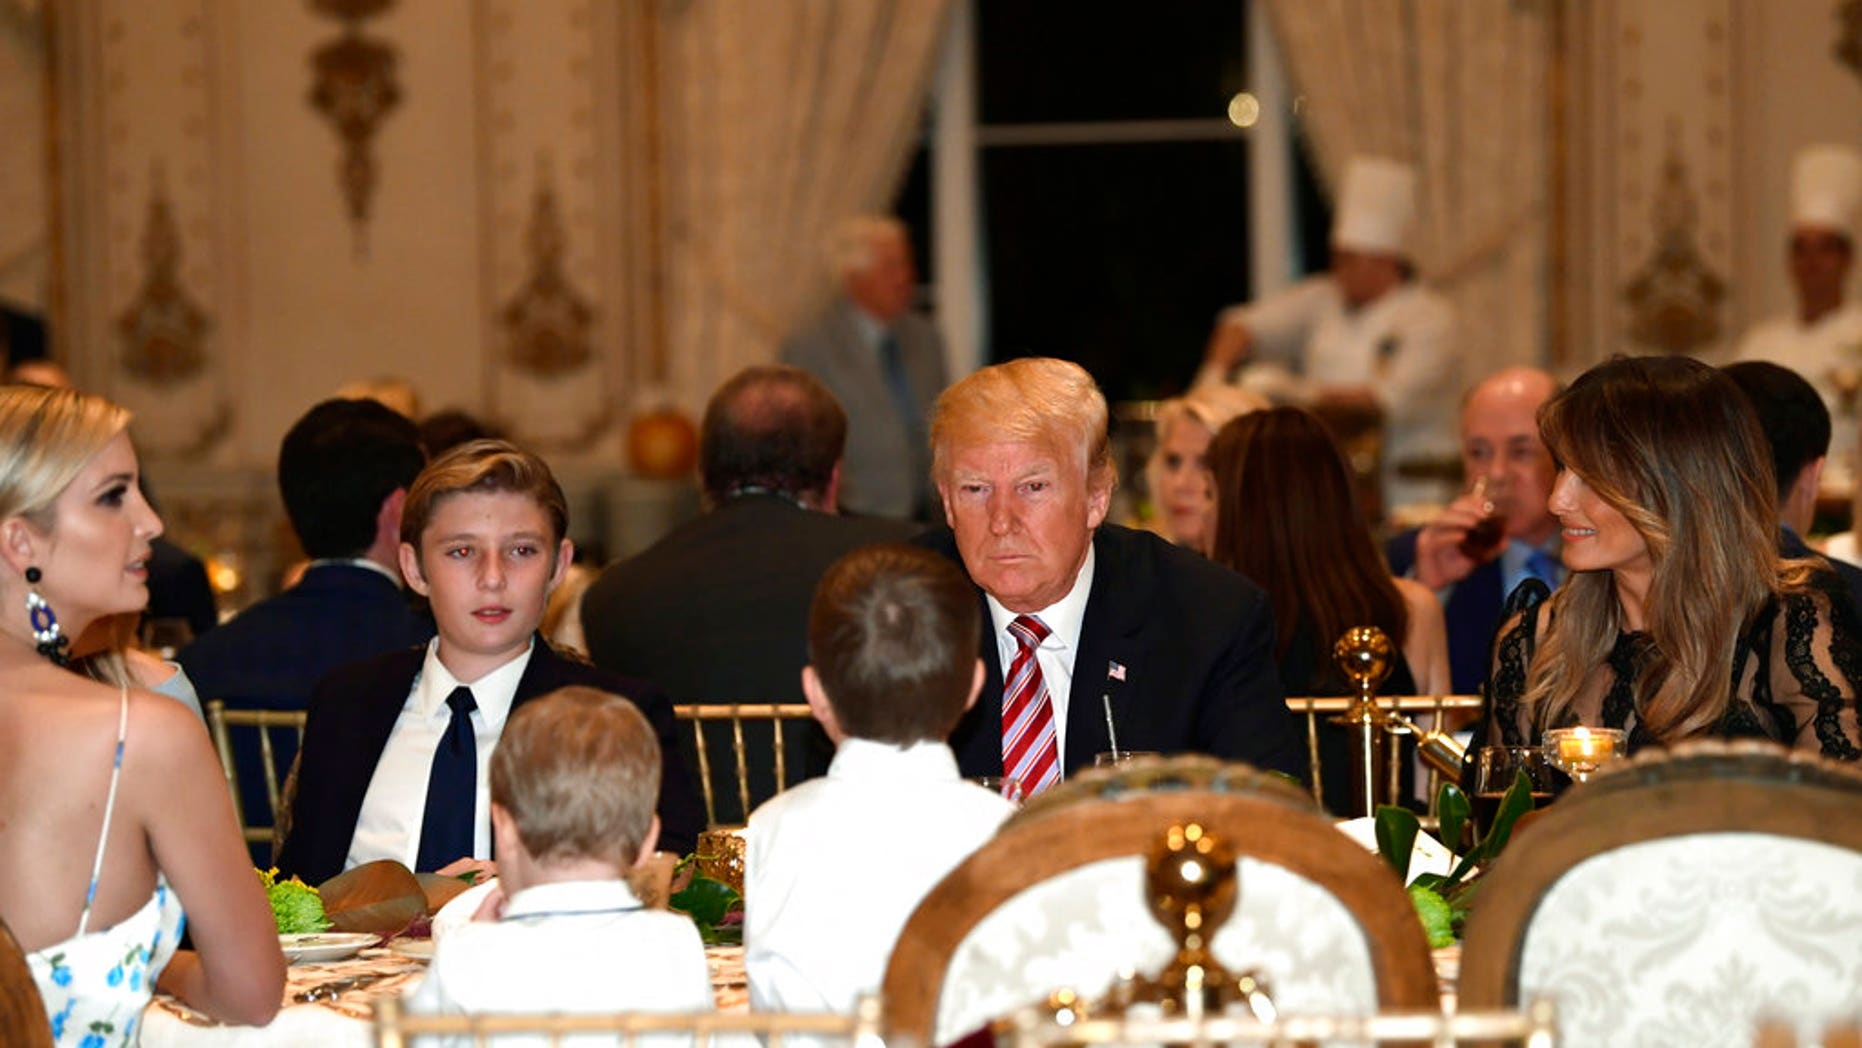 President Donald Trump, center, and first lady Melania Trump, right, sit with their family as they have Thanksgiving Day dinner at their Mar-a-Lago estate in Palm Beach, Fla., Thursday, Nov. 22, 2018. Ivanka Trump, left, and Barron Trump, second from left, attend.